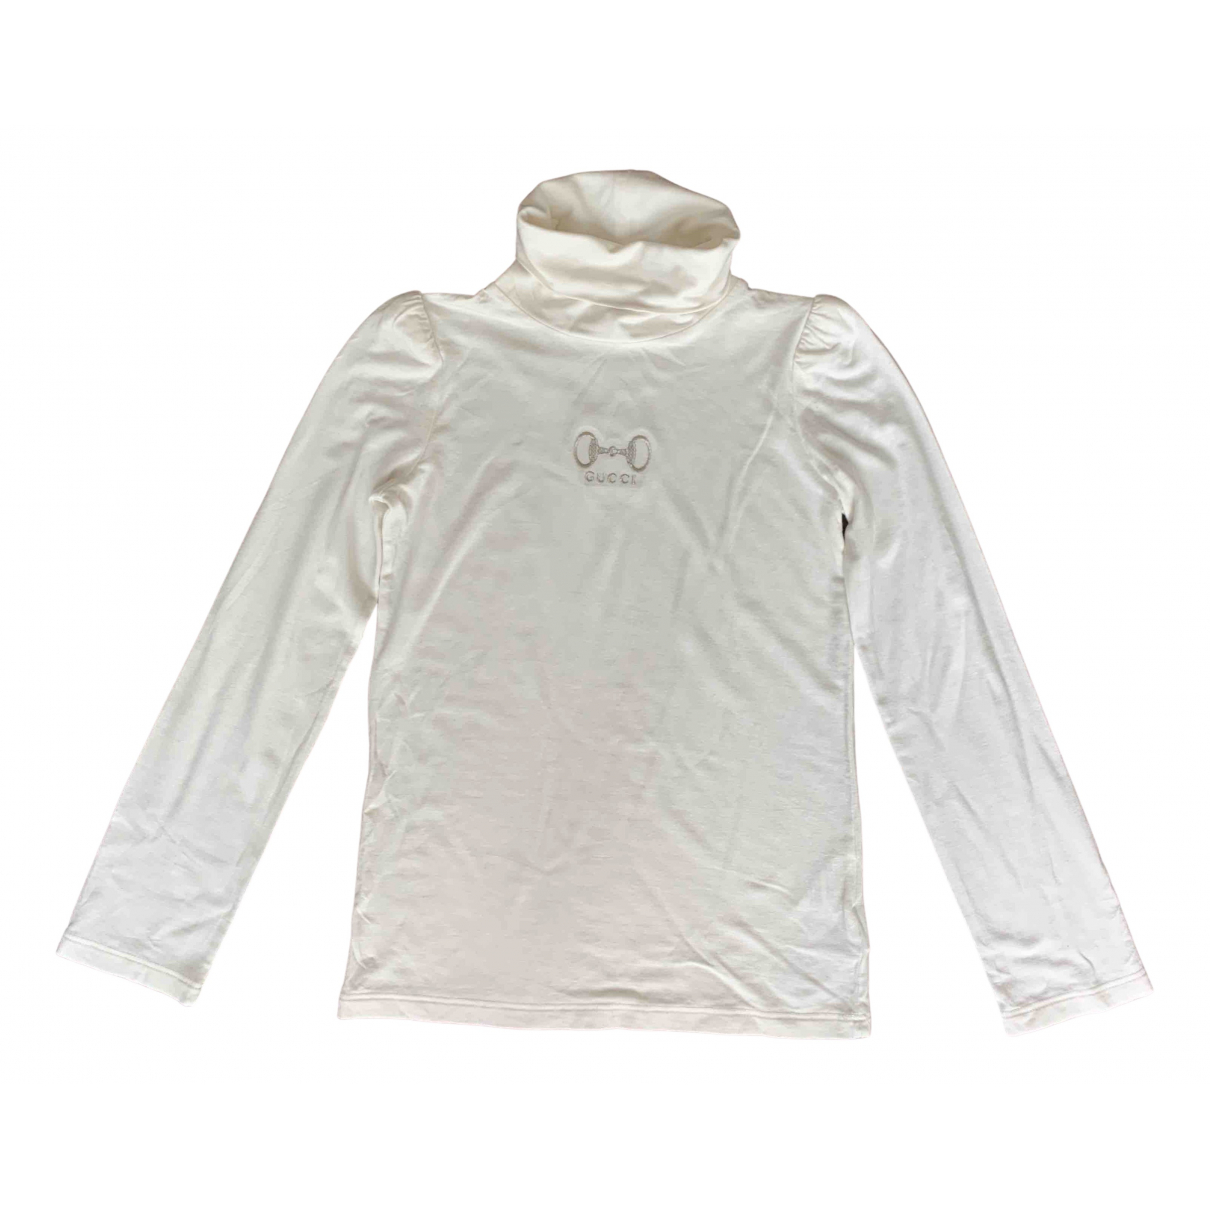 Gucci \N White  top for Kids 8 years - up to 128cm FR